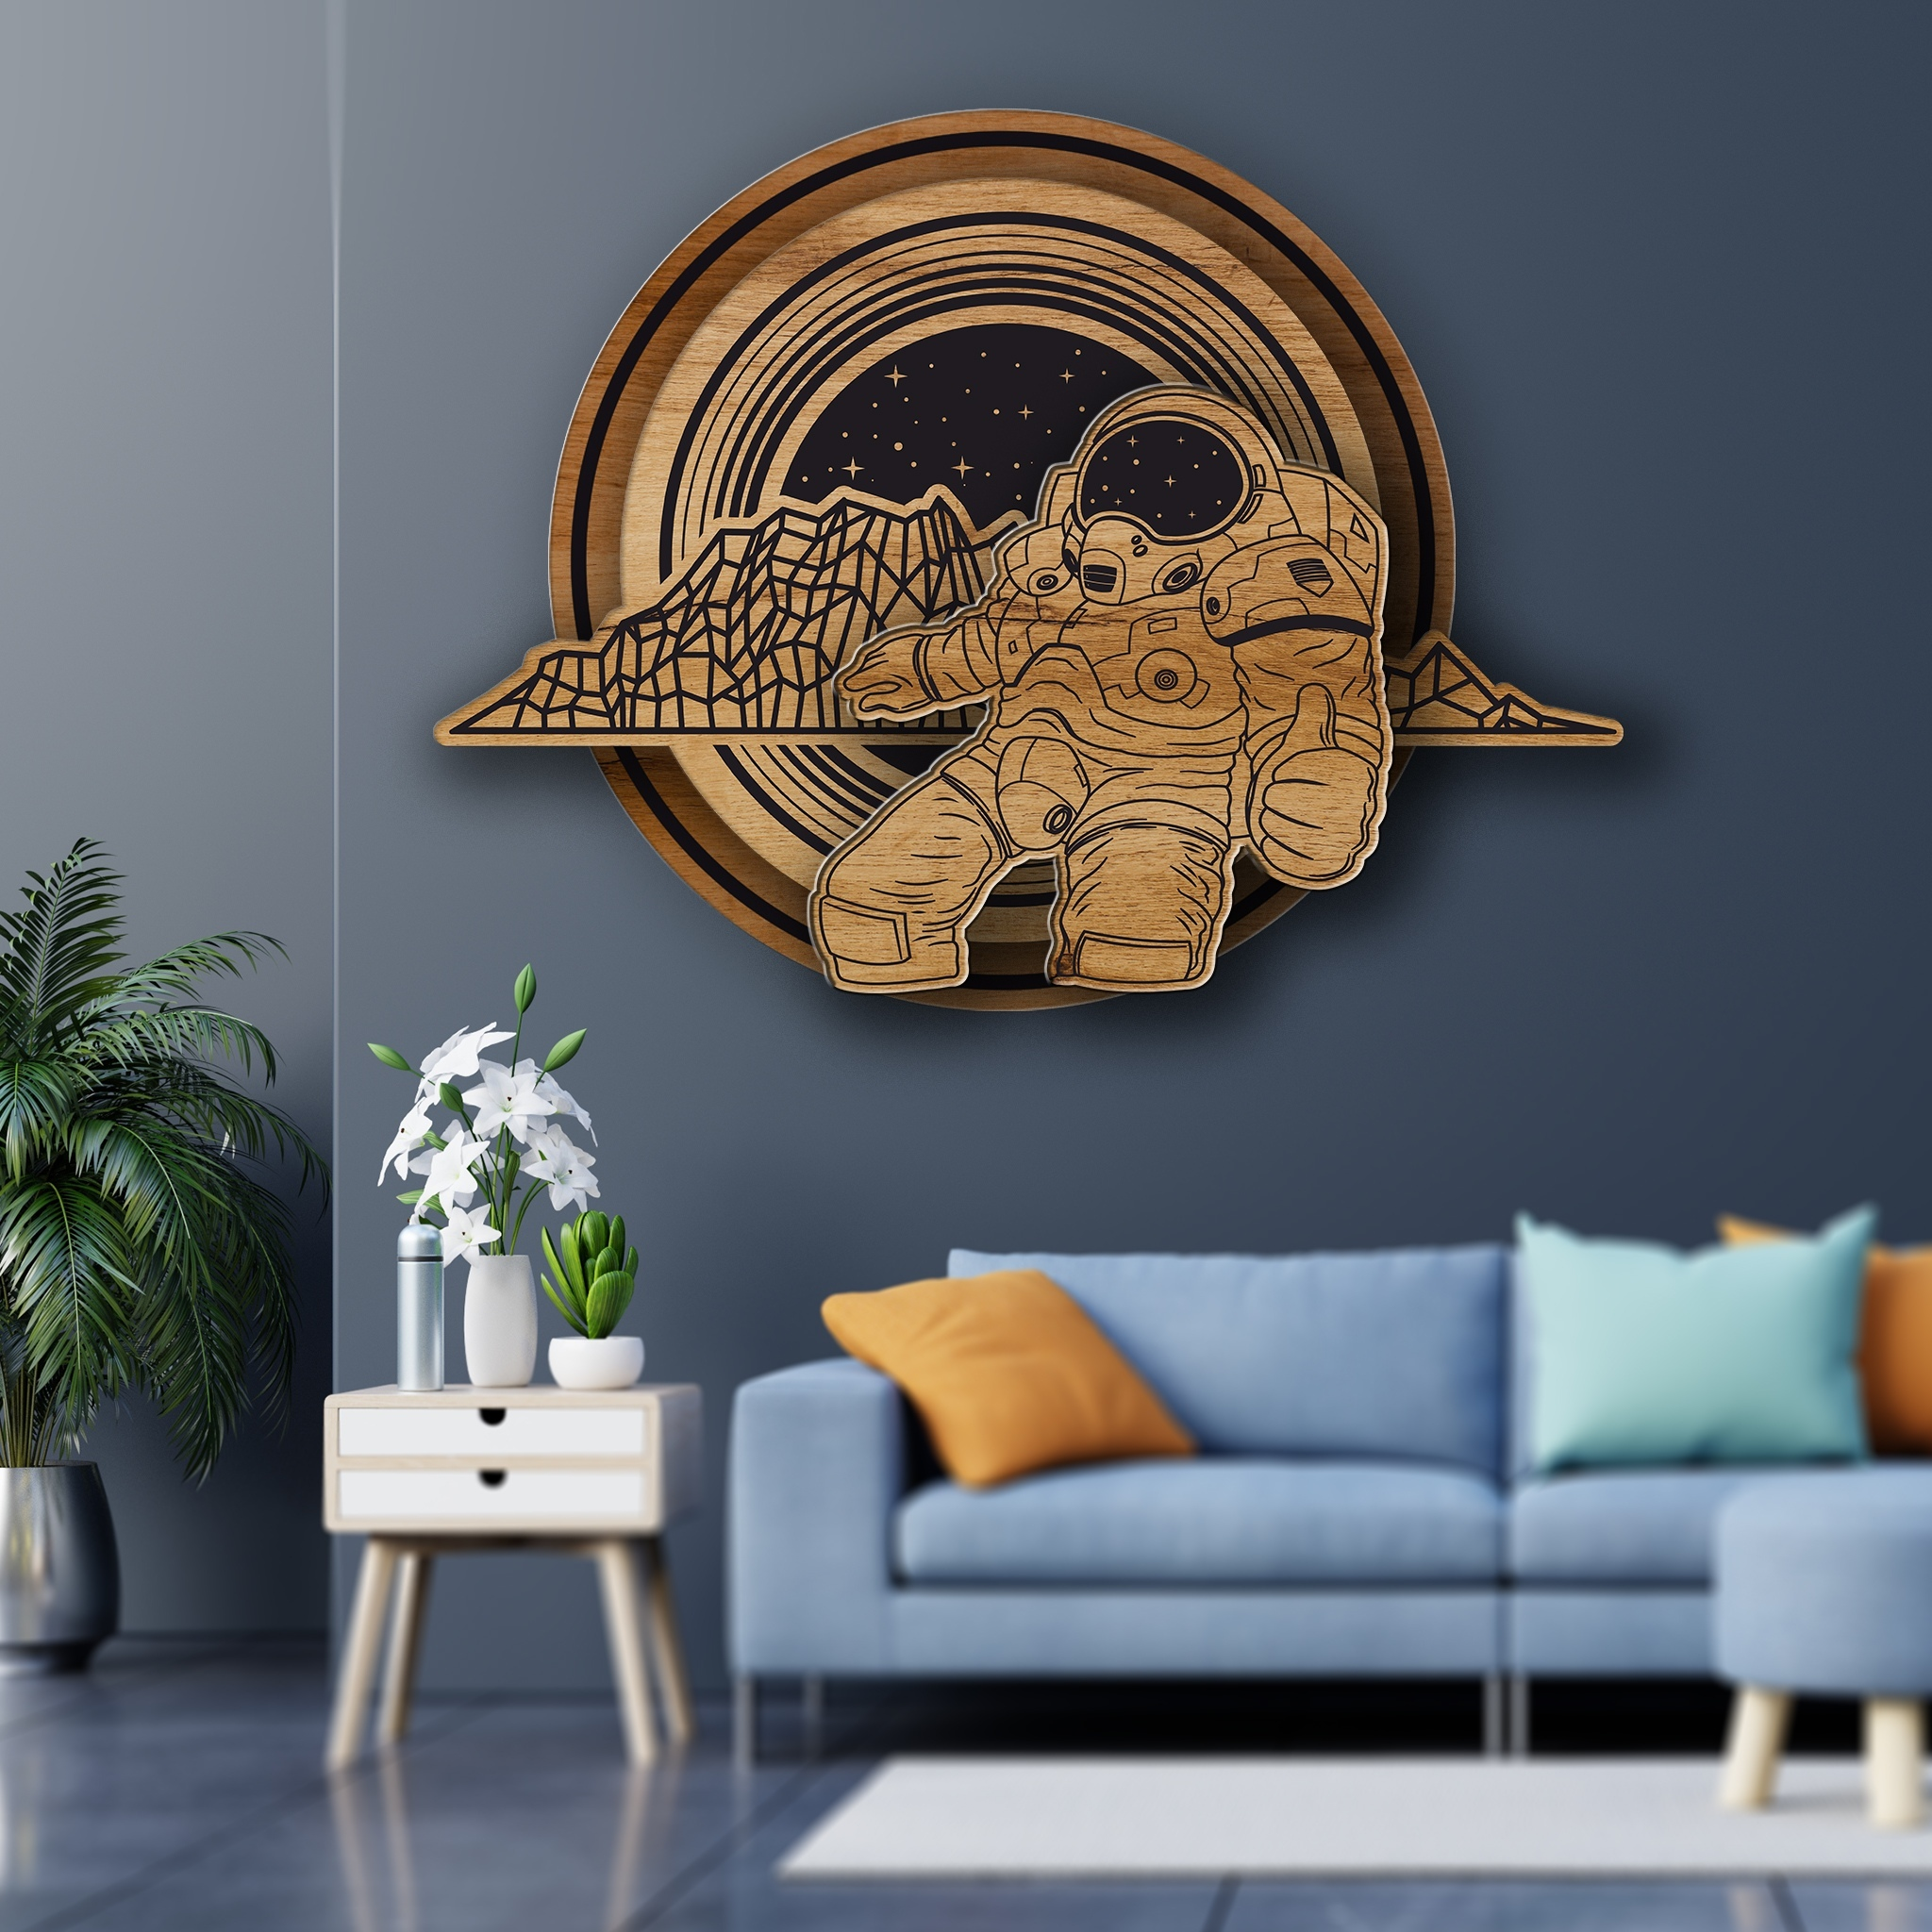 Laser Cut Engraved Space Wall Art Cosmos Theme Wall Decor Man In Space Art Free Vector